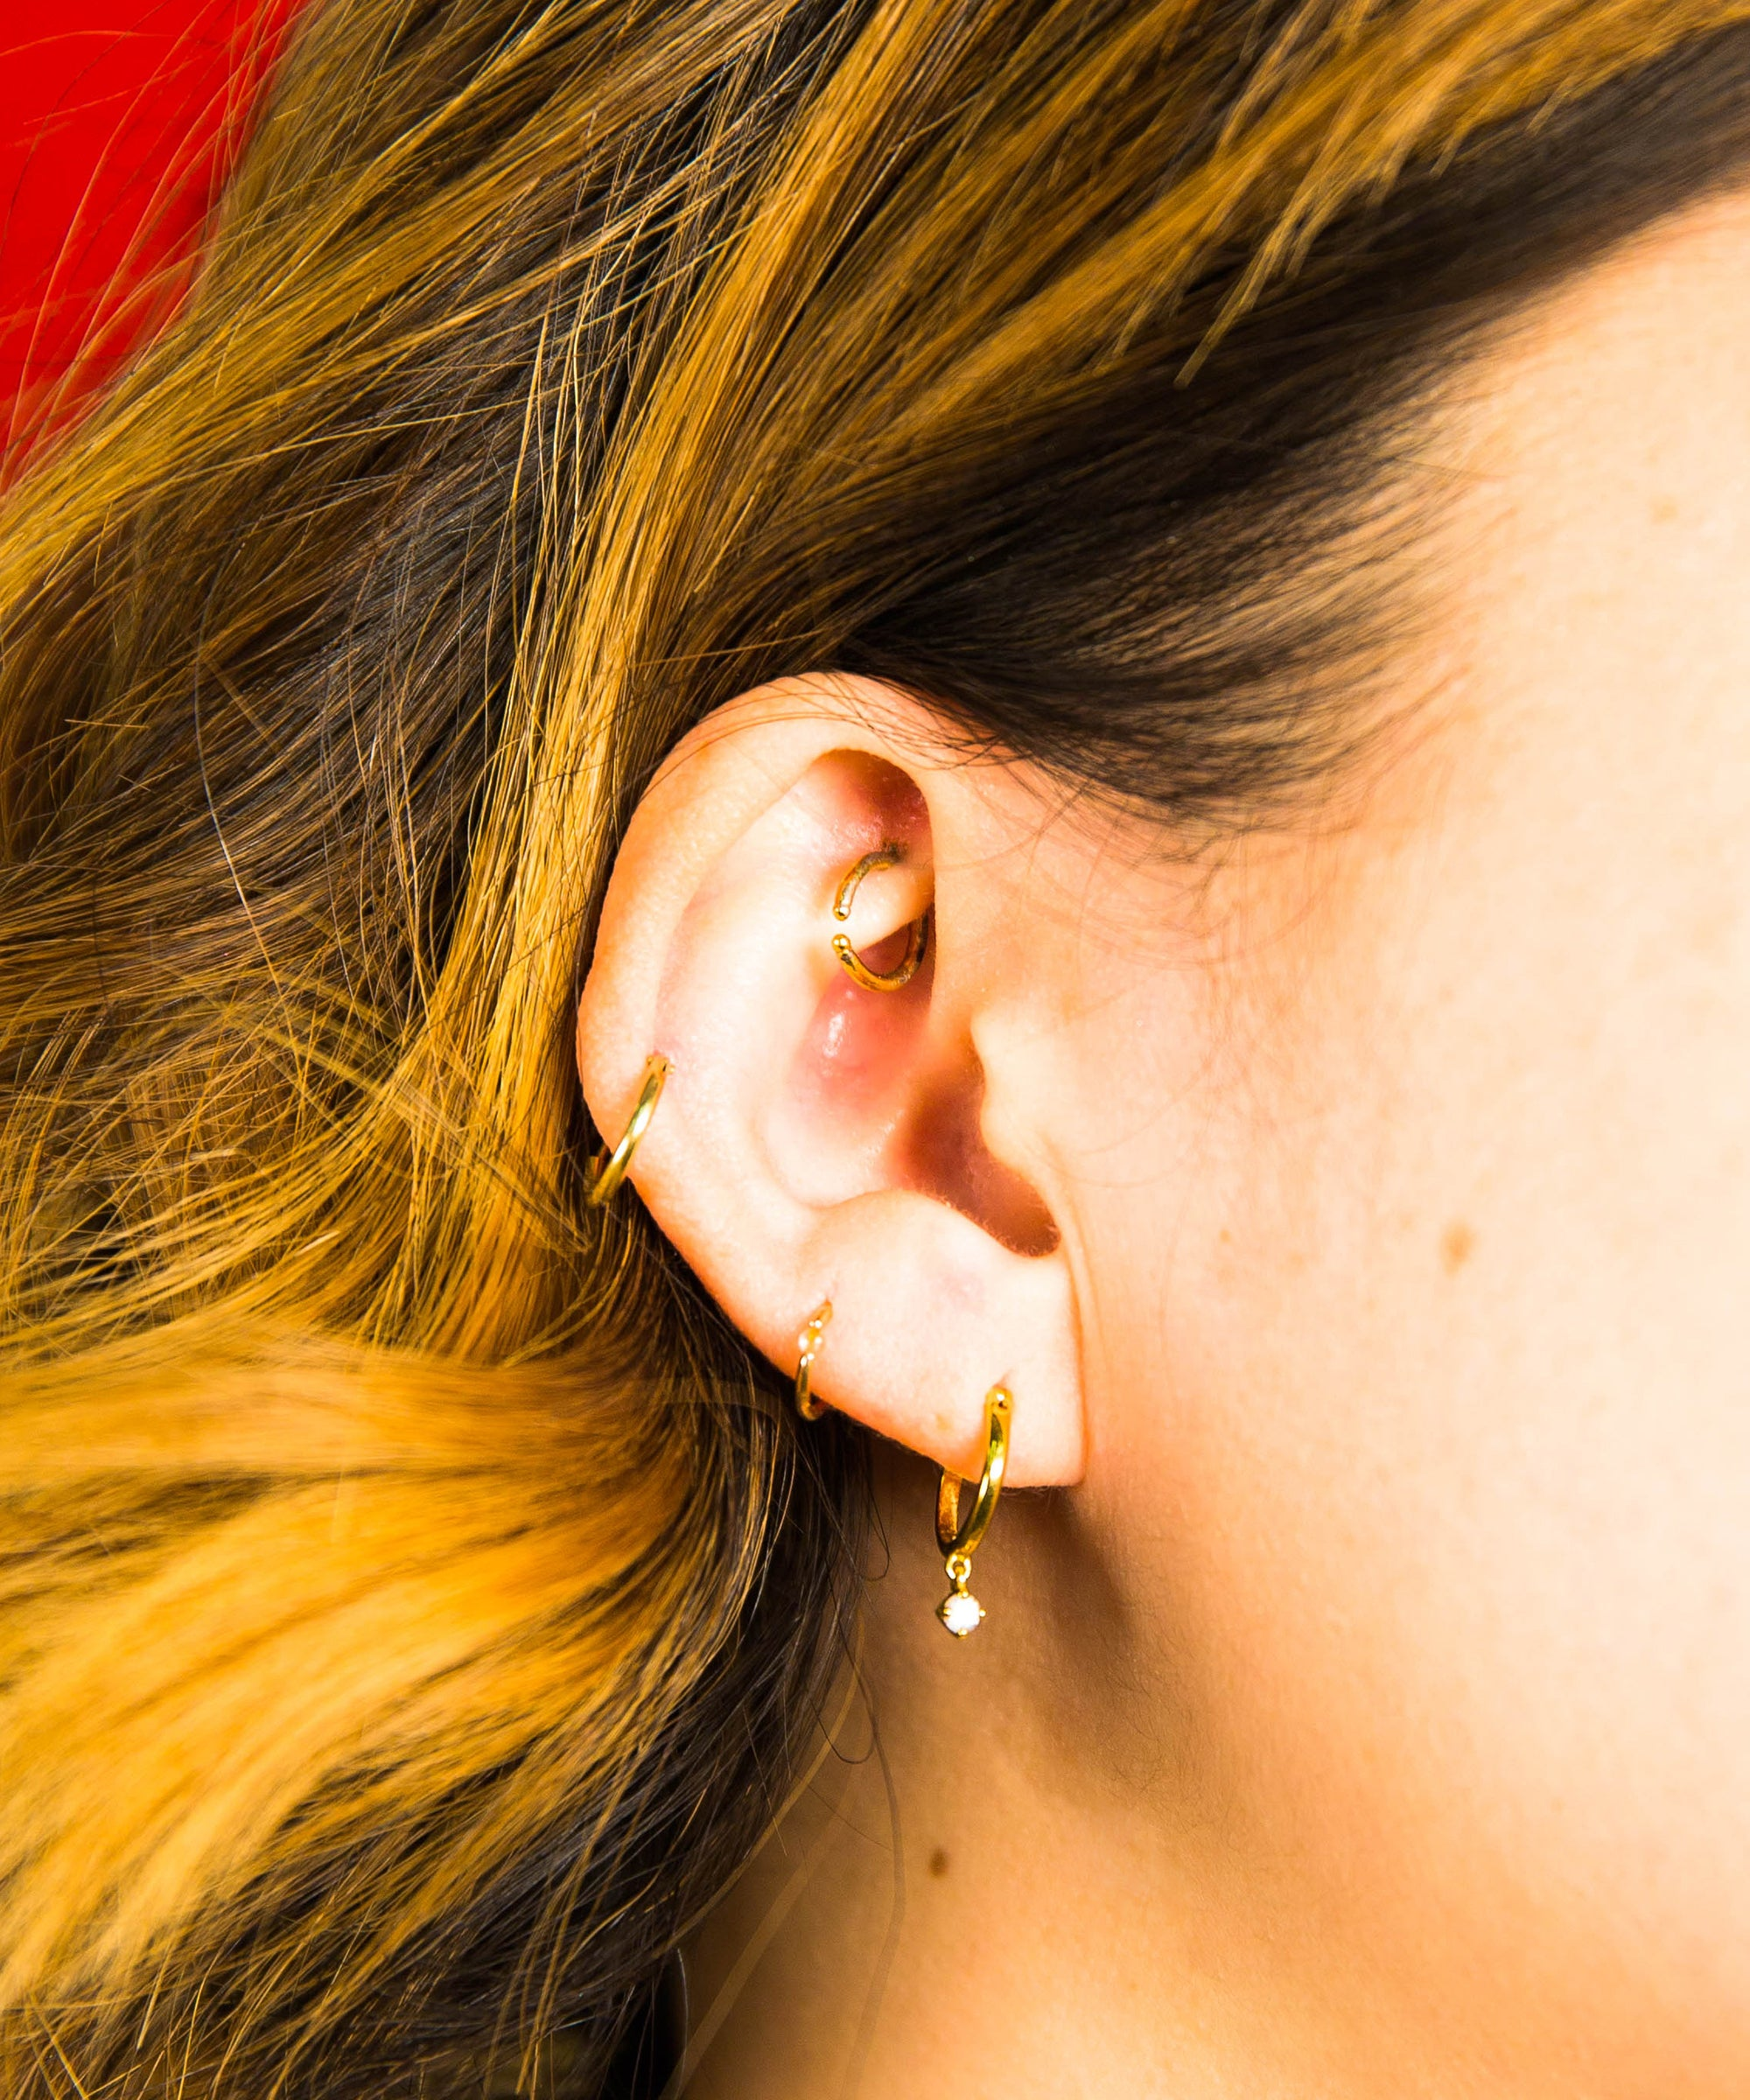 Curated Ear Piercing Instagram Trend Risks Expert Tips